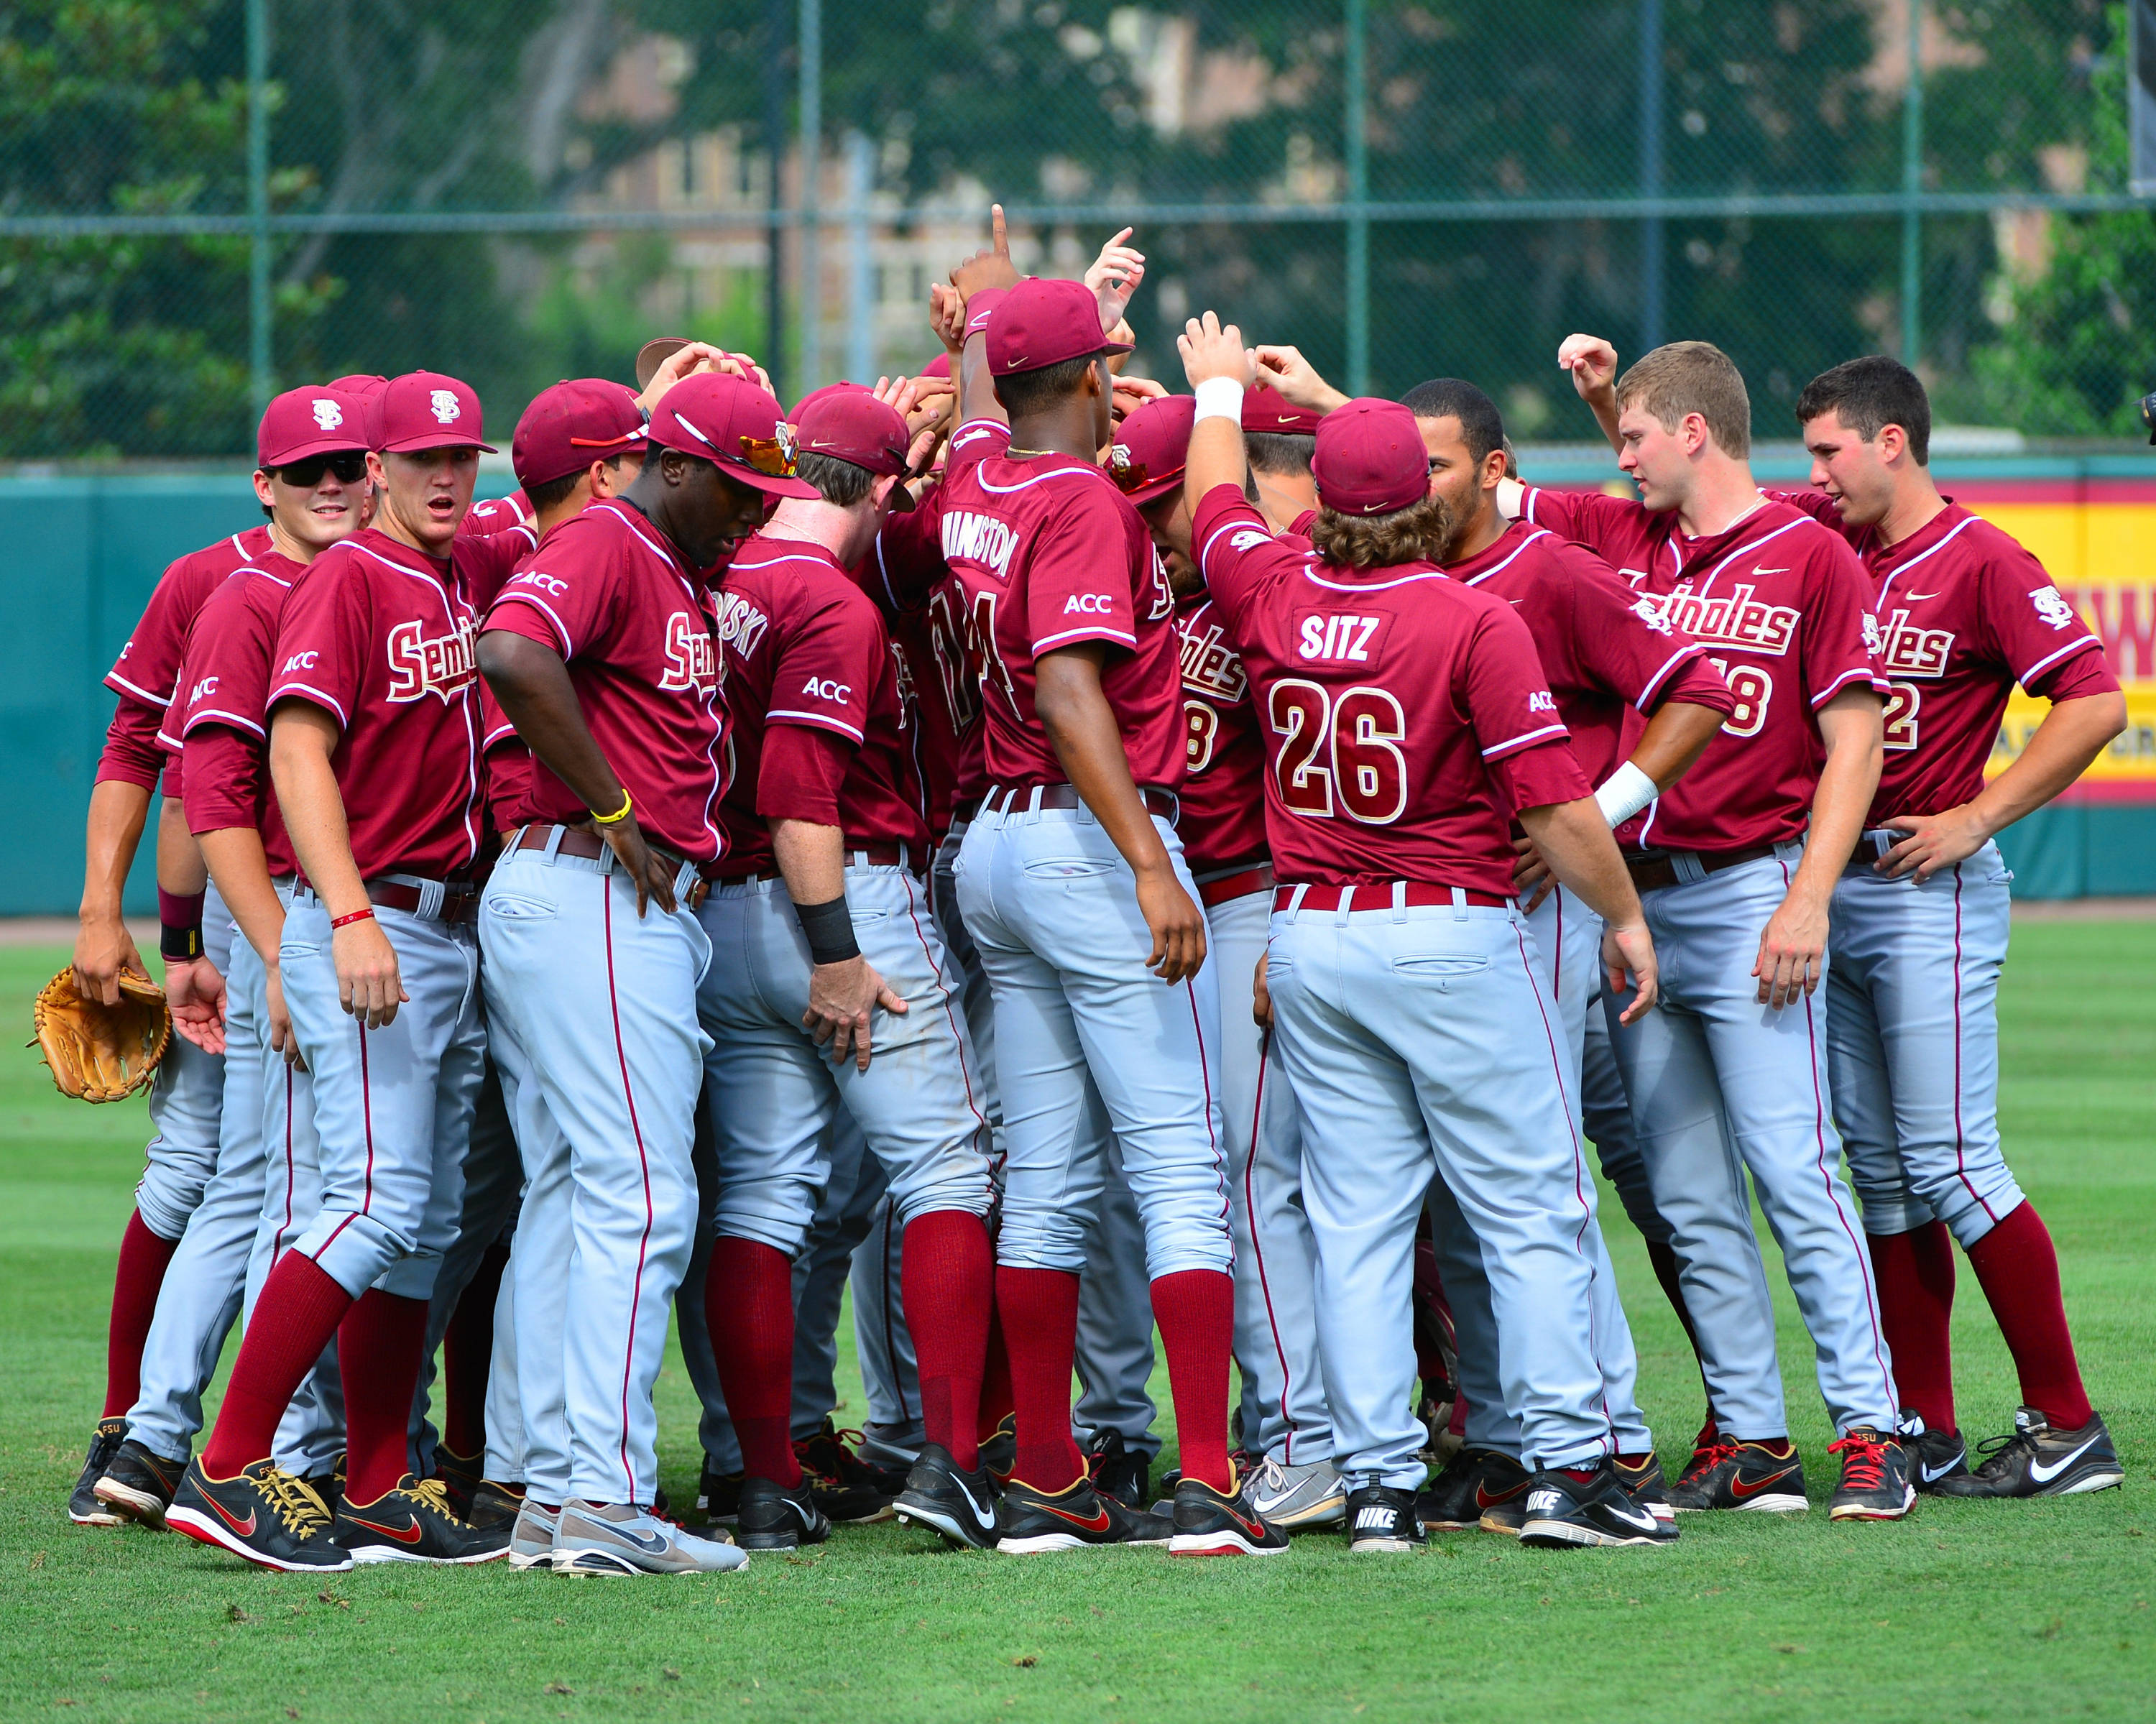 The Seminoles gather in the outfield before the start of Saturday's game vs. Troy.